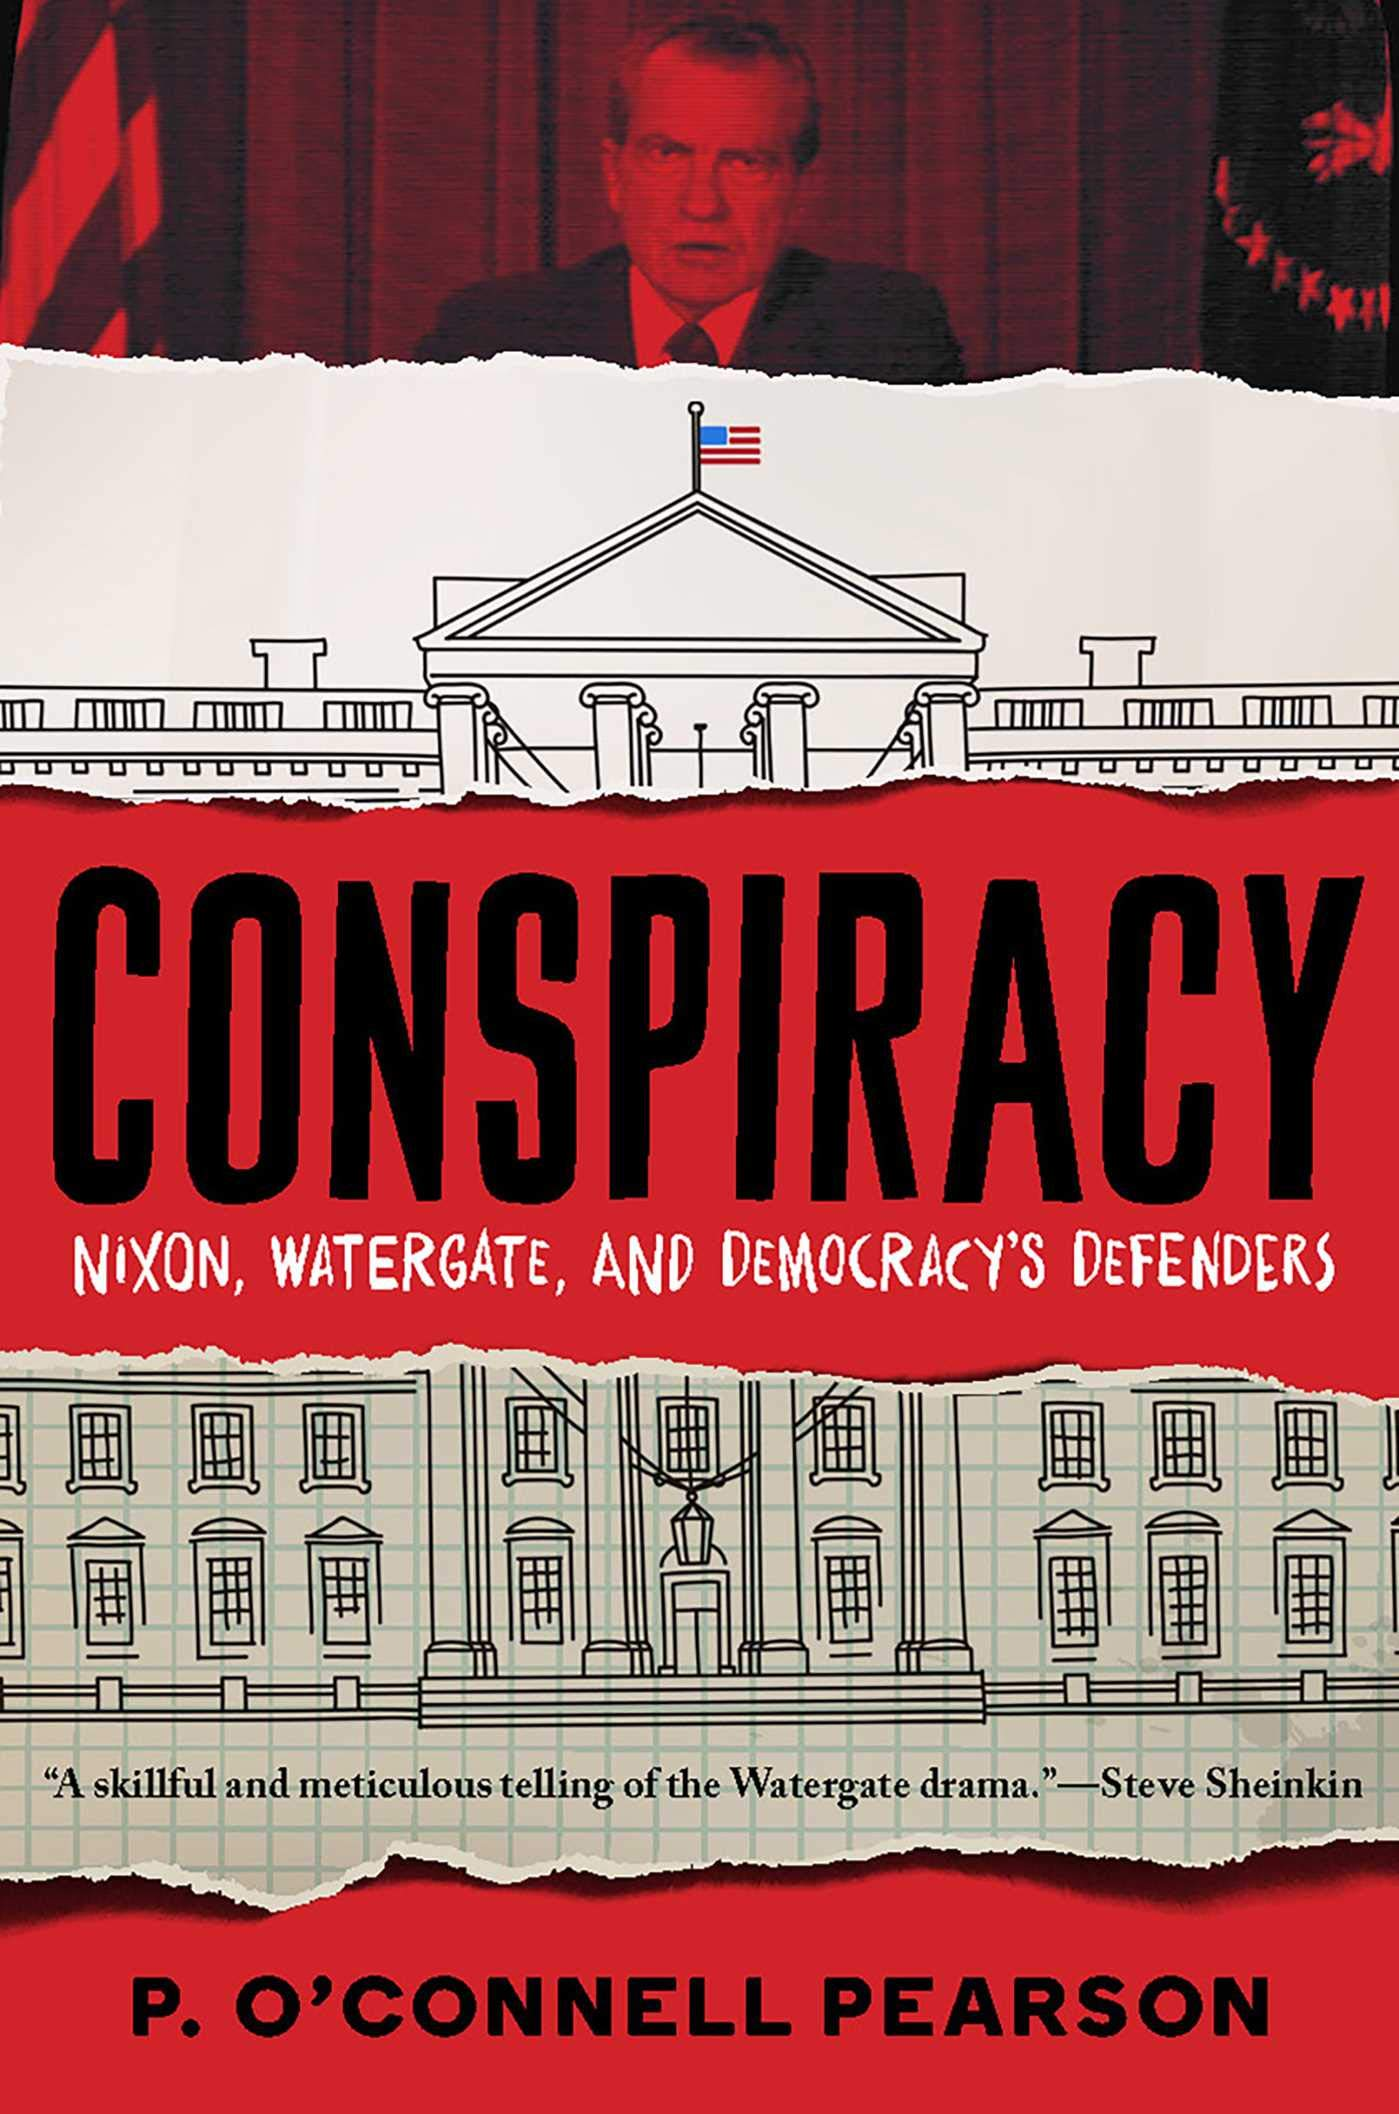 Conspiracy: Nixon, Watergate, and Democracy's Defenders